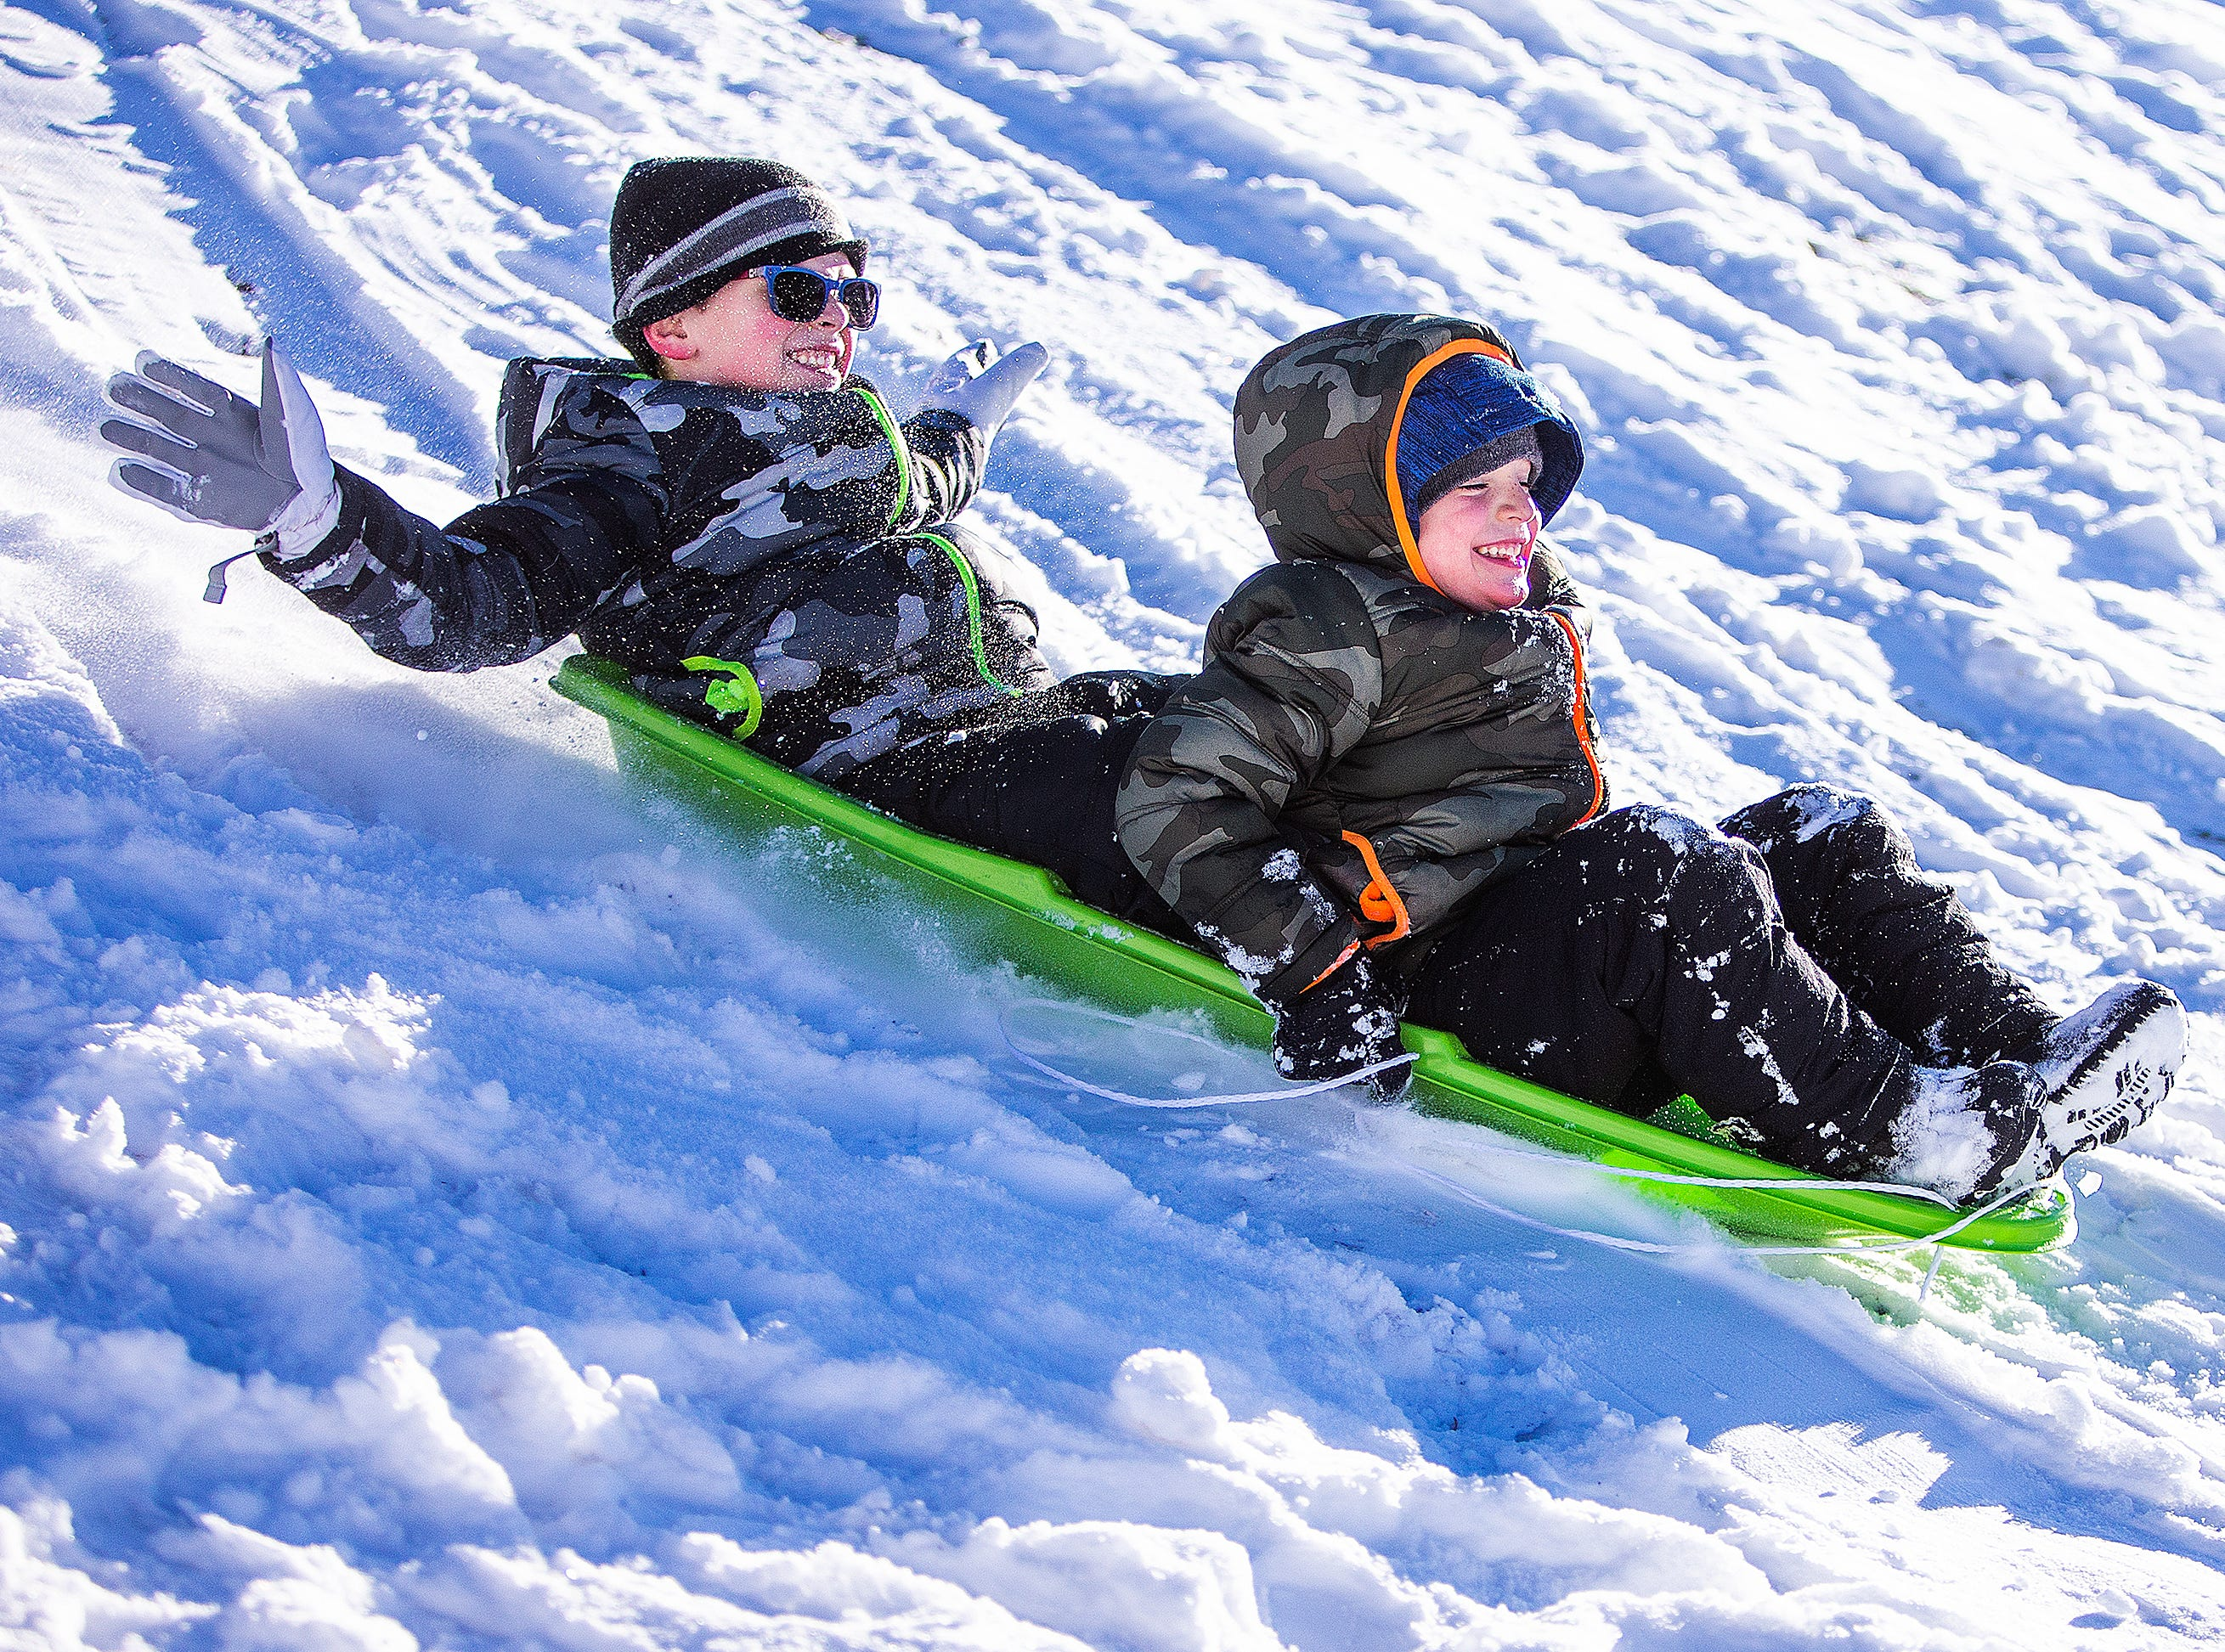 Kade Fagerud, 6, left, and his brother, Sawyer, 5, Payson, slide with delight down a hill on fresh snowfall at Green Valley Park in Payson on New Year's Day, 2019.